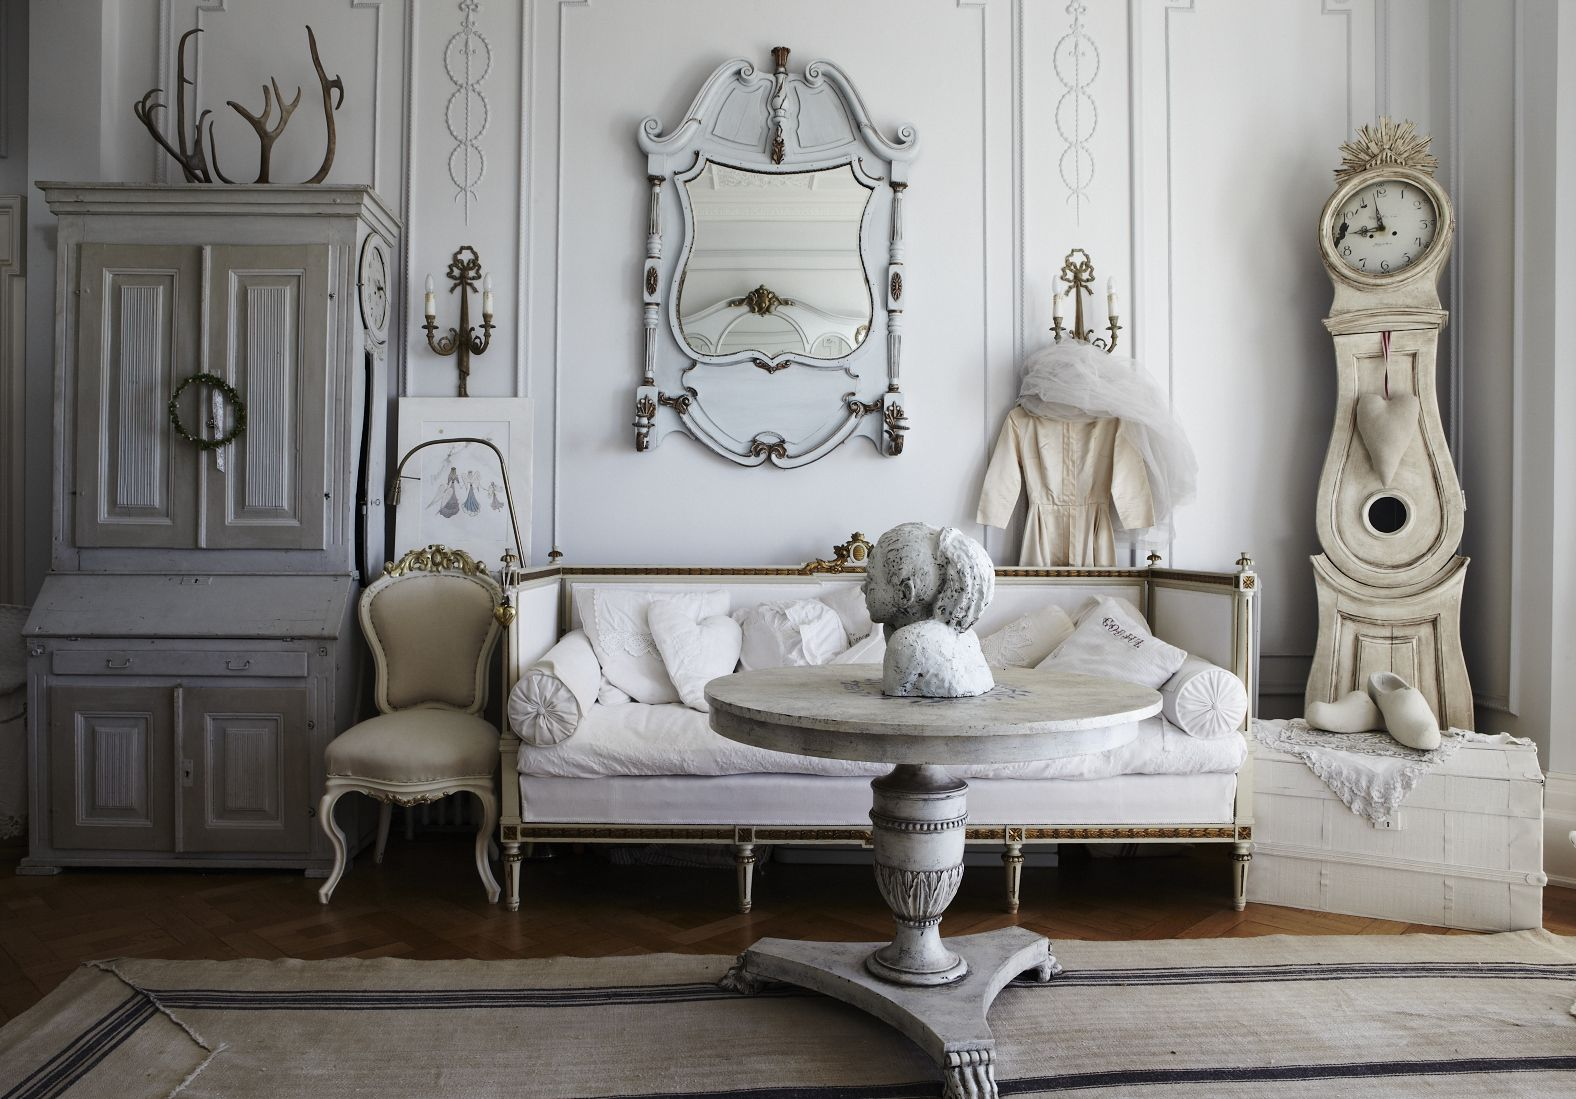 Source: http://www.tophomedesigns.com/25-cozy-shabby-chic-furniture-ideas-home/